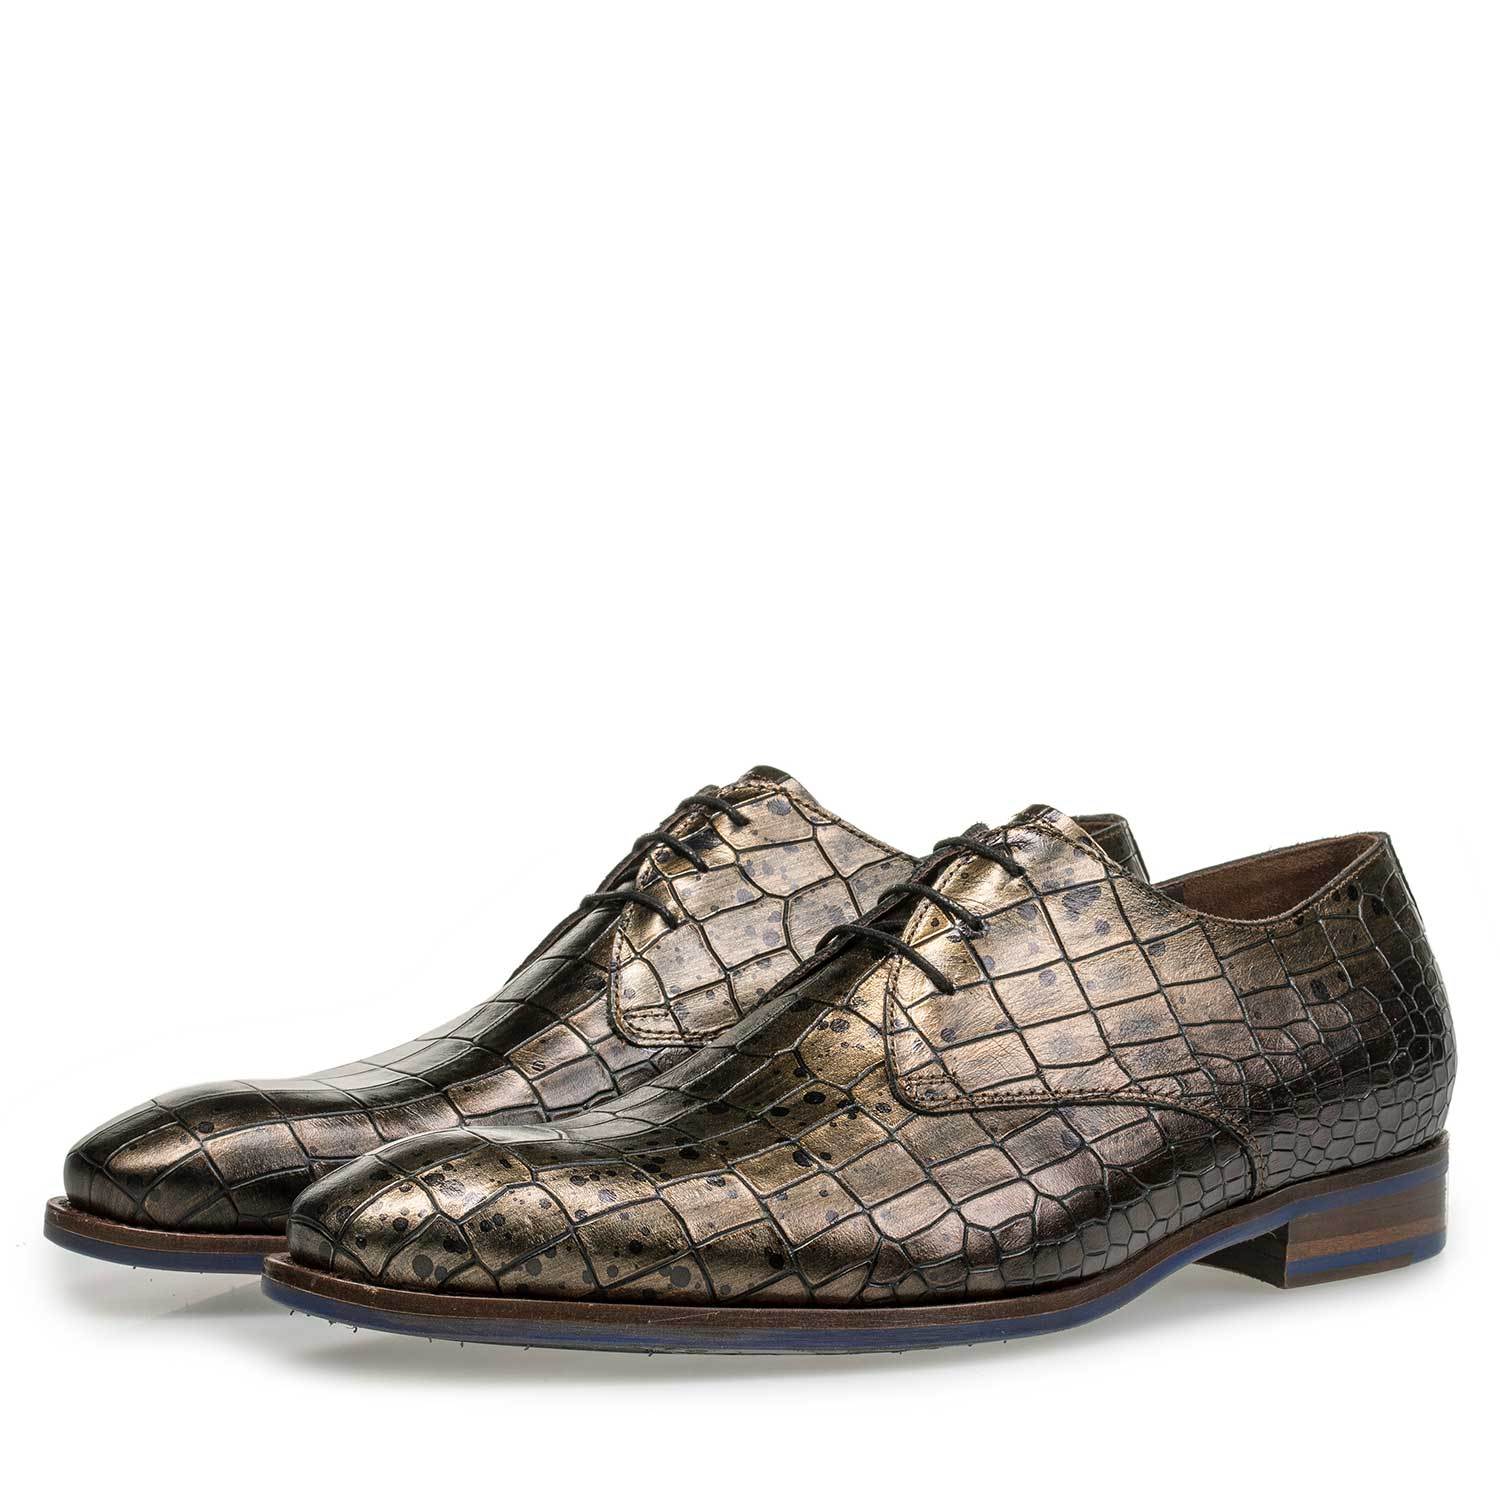 18067/00 - Calf's leather lace shoe with croco print